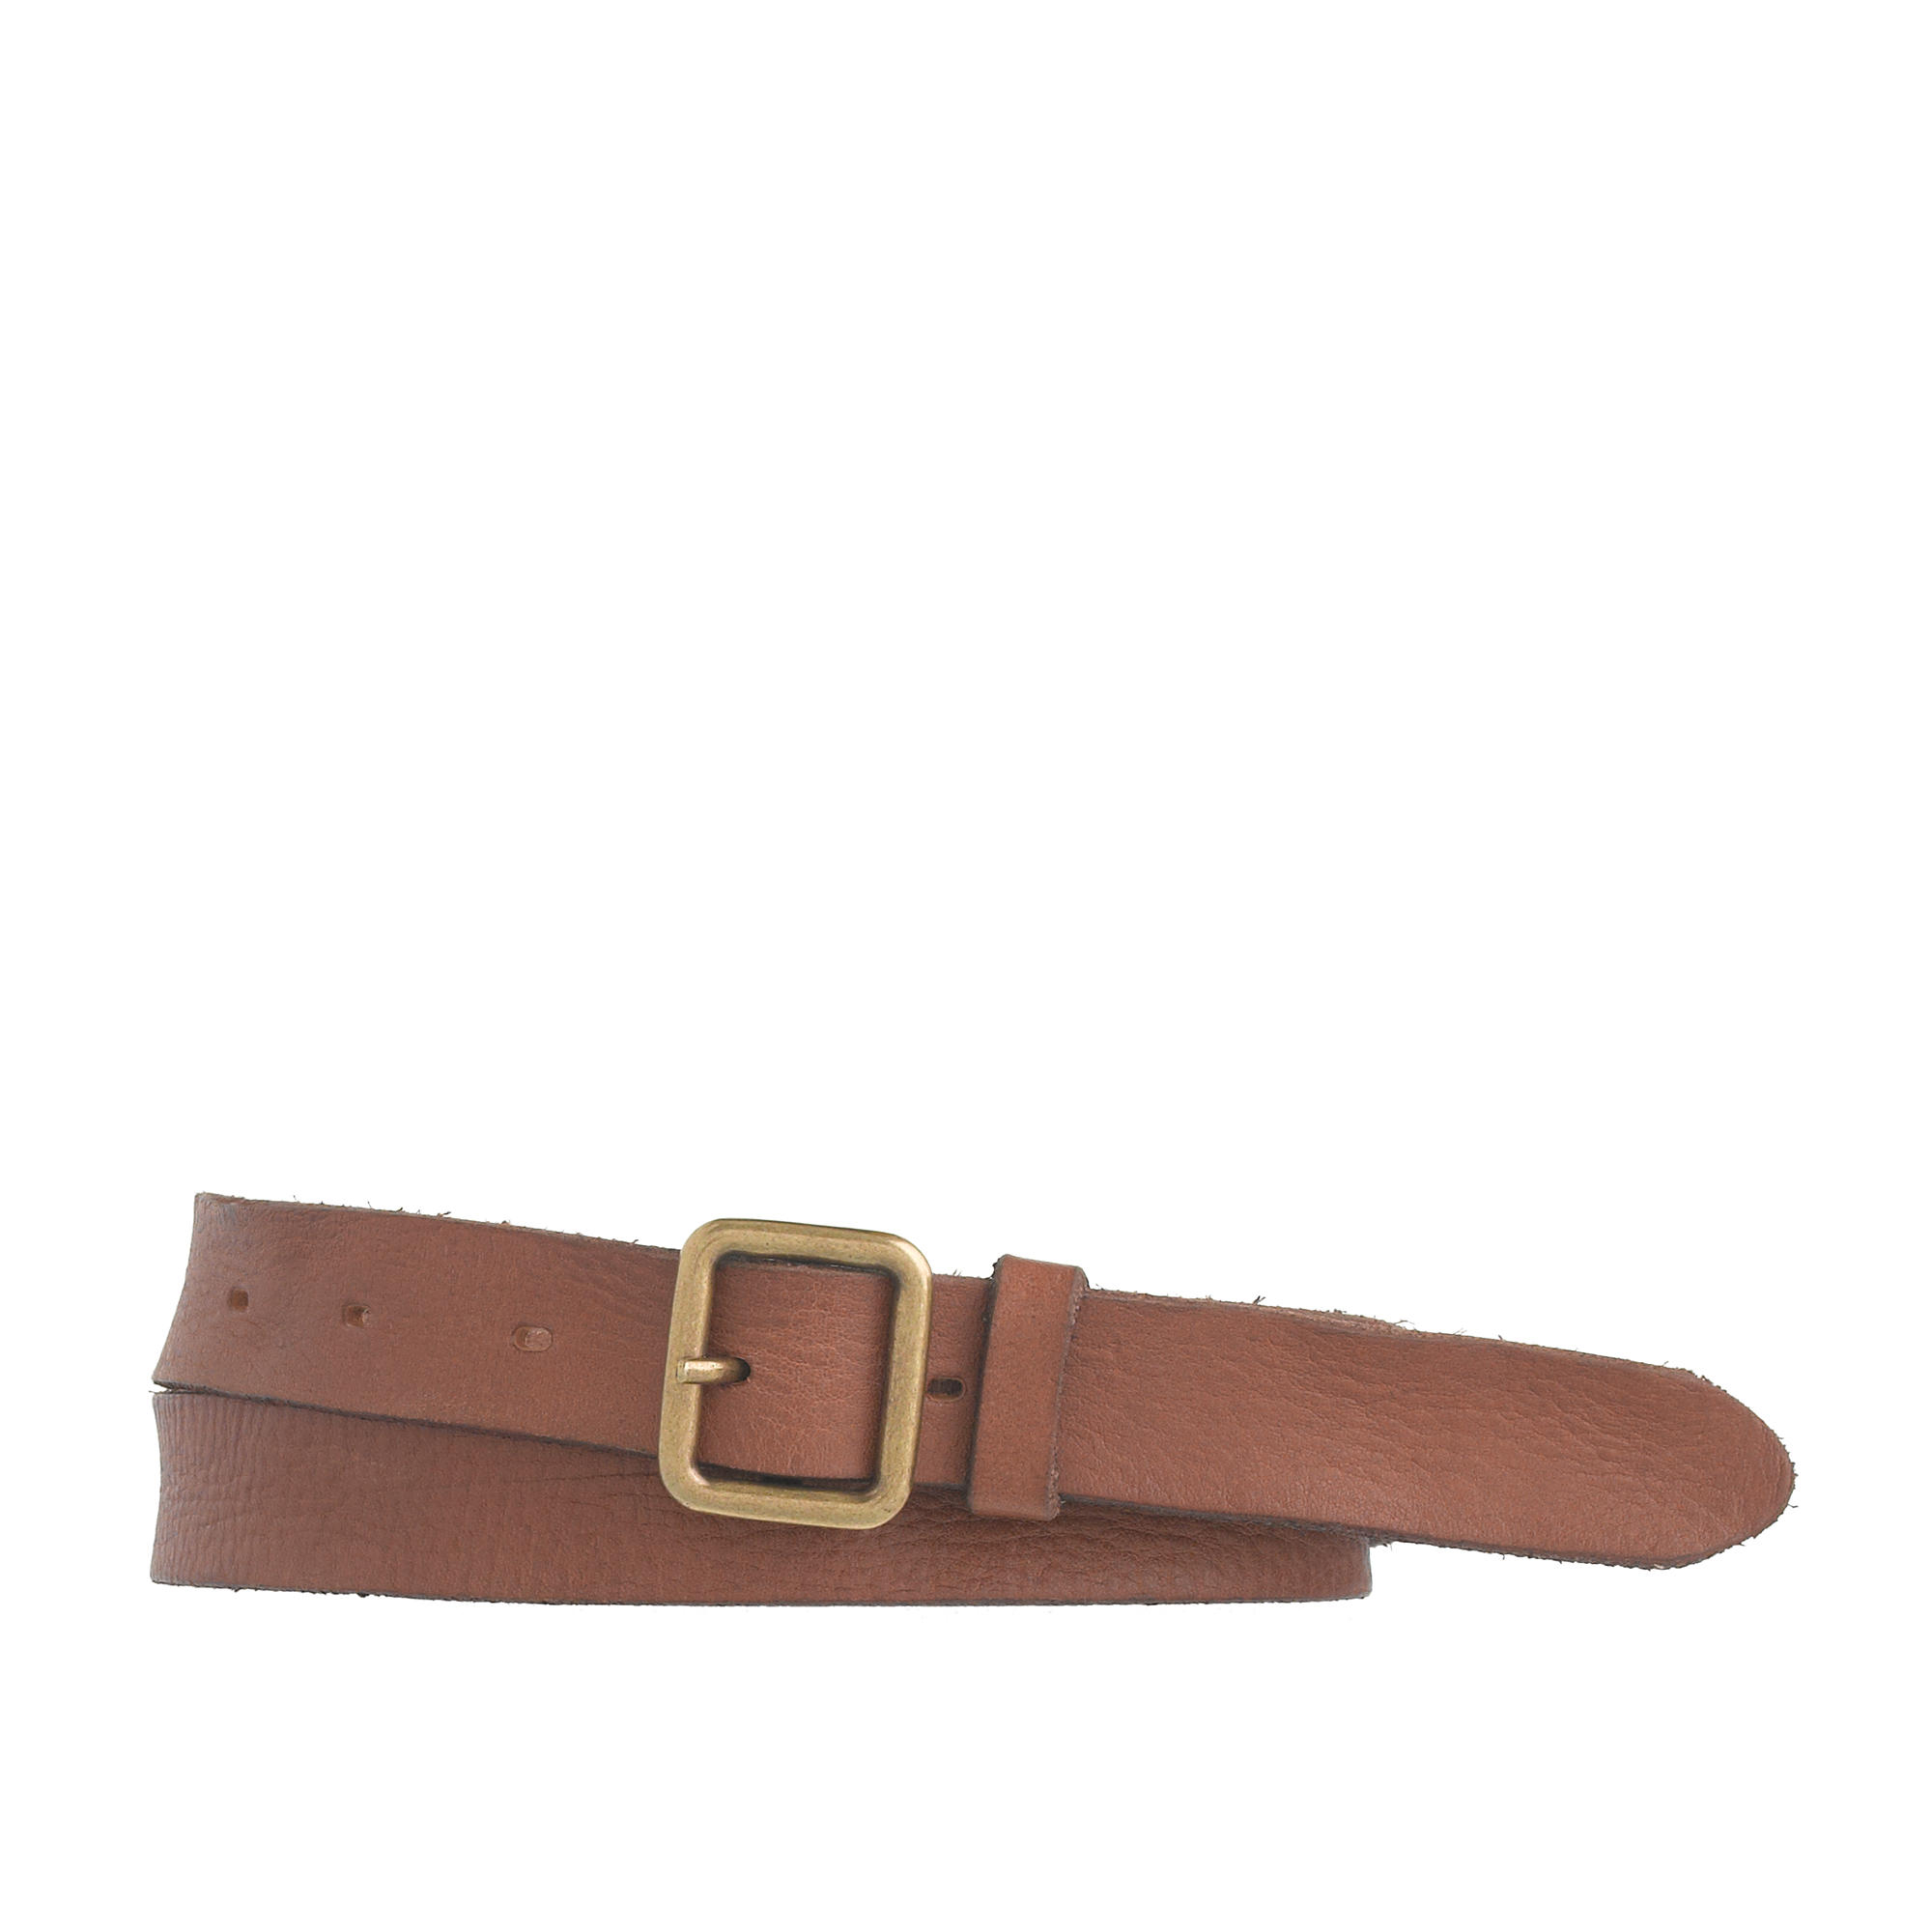 j crew distressed leather belt in brown lyst